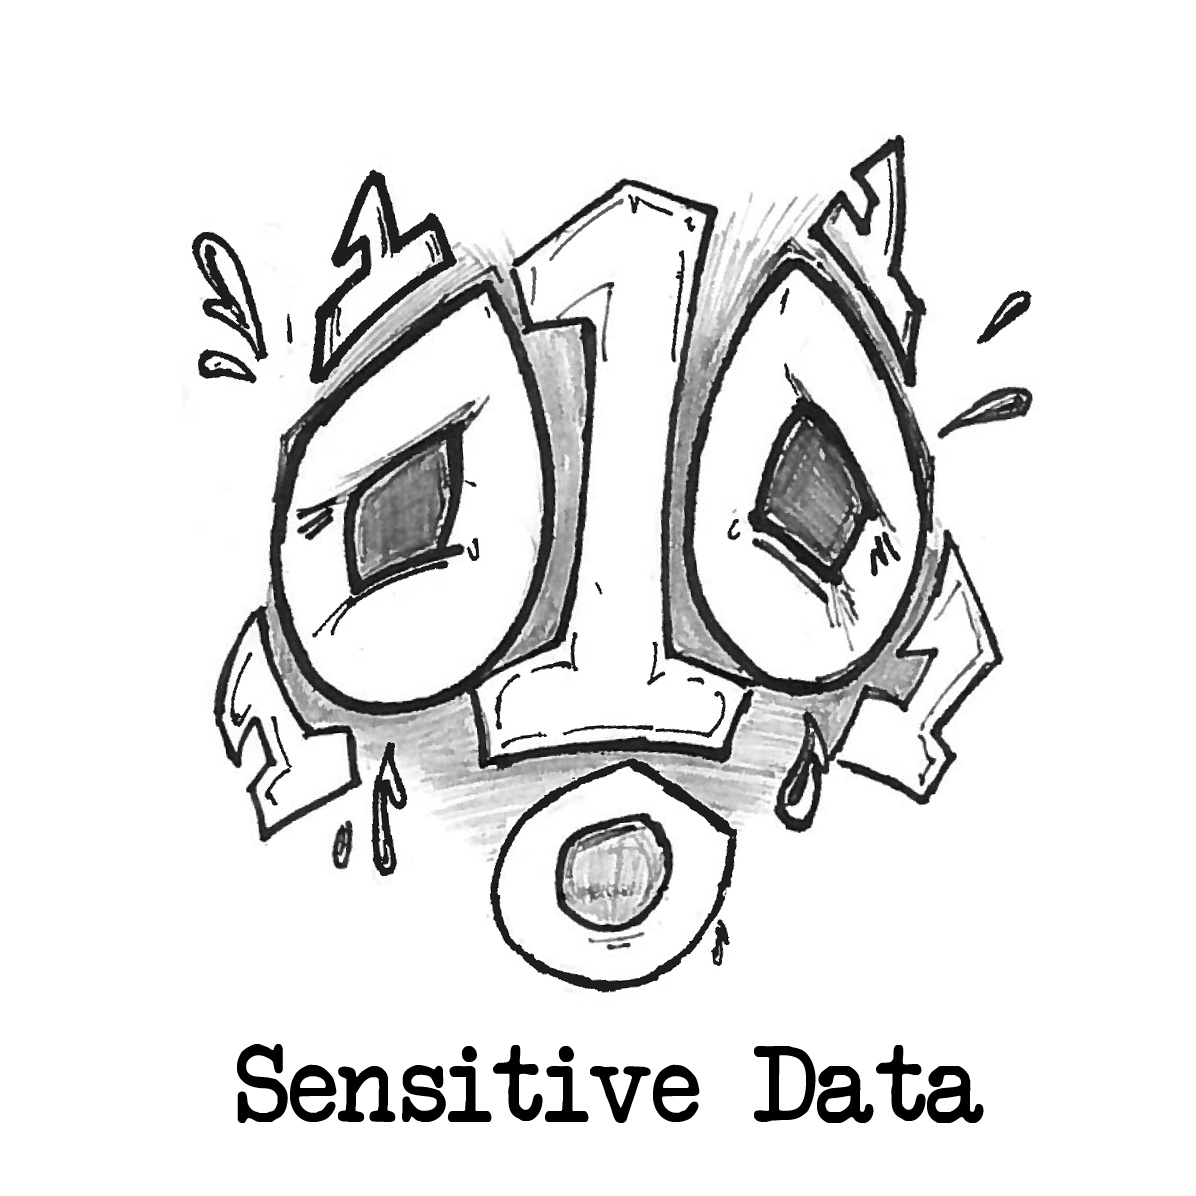 Sensitivedata